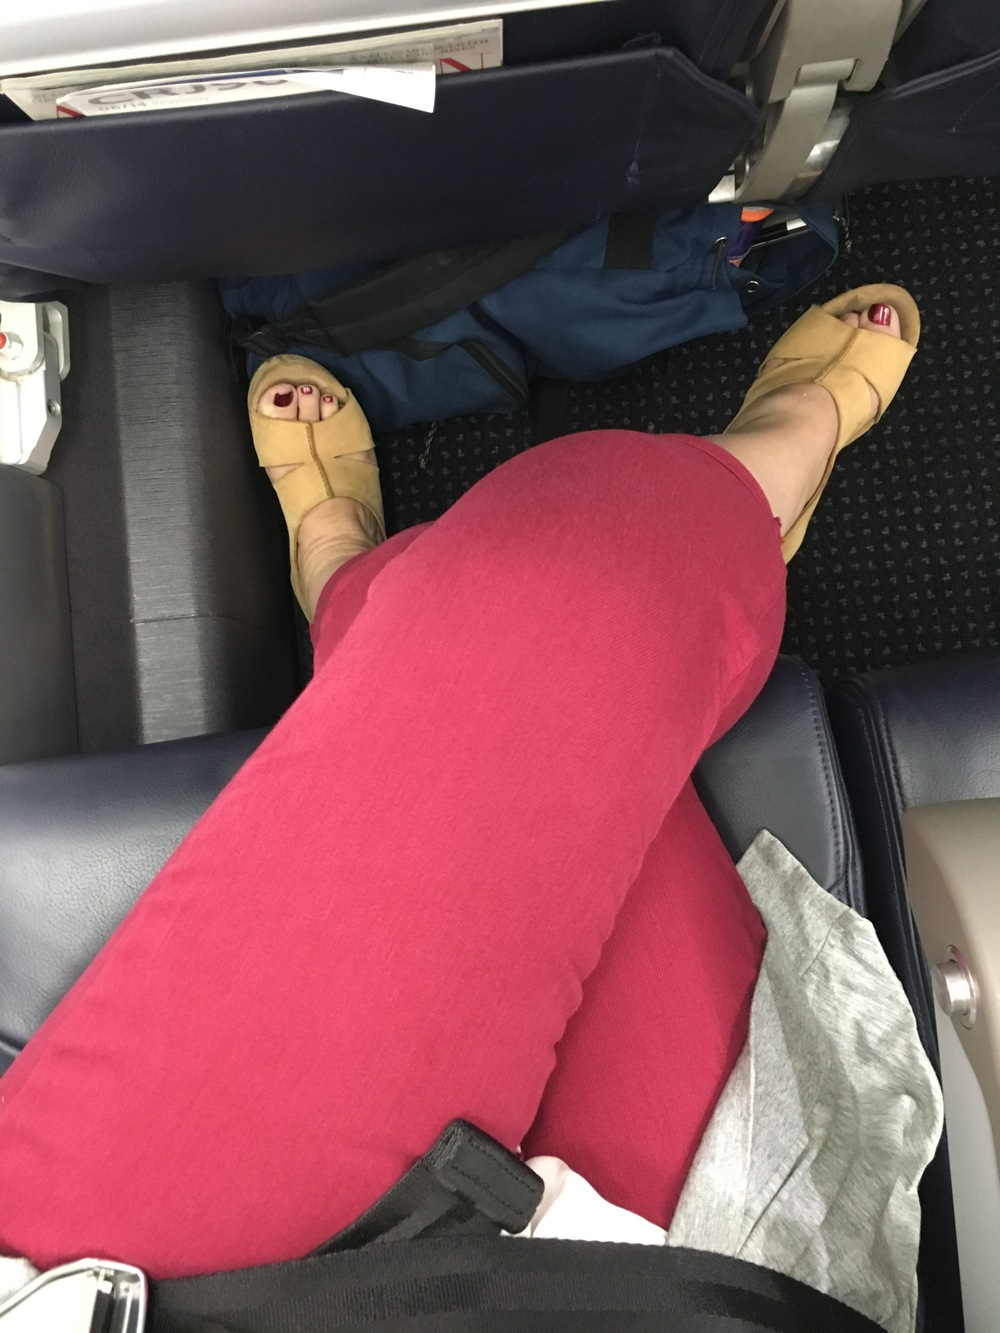 My legs, crossed, with room to spare while I sat in an airline seat. Victory!